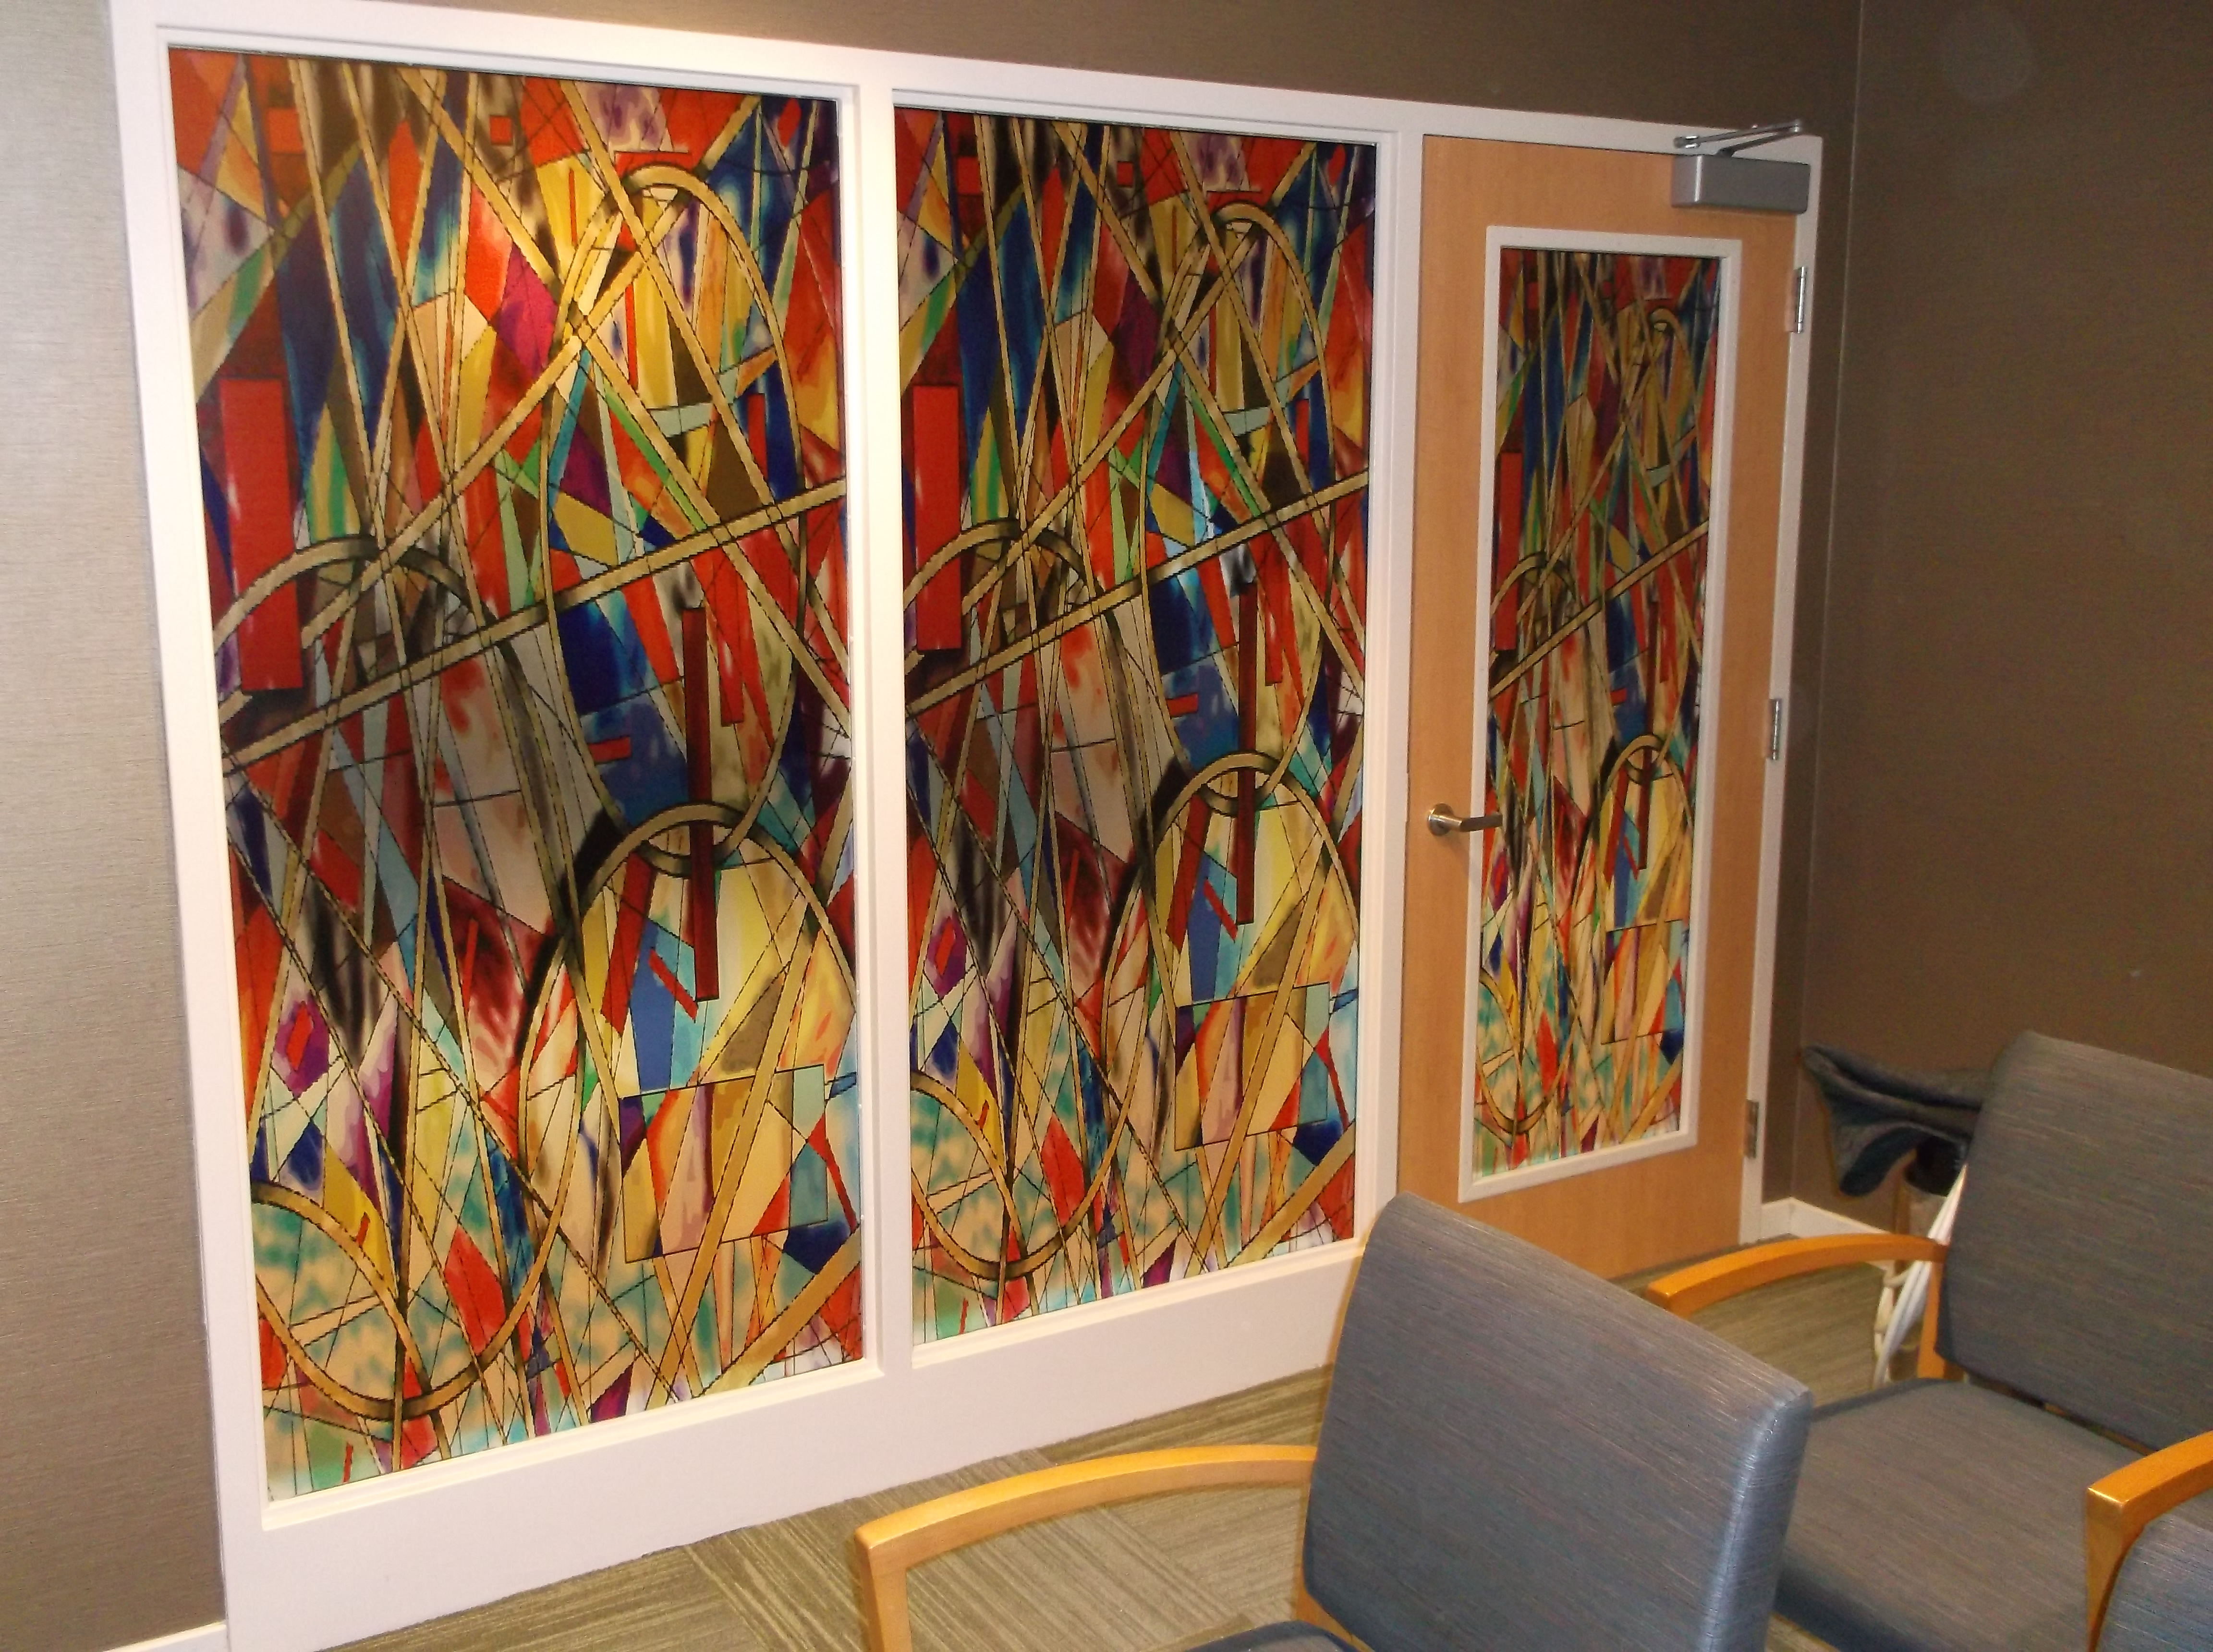 Brighten Up Your View with Decorative Window Film! – Decorative Window Film